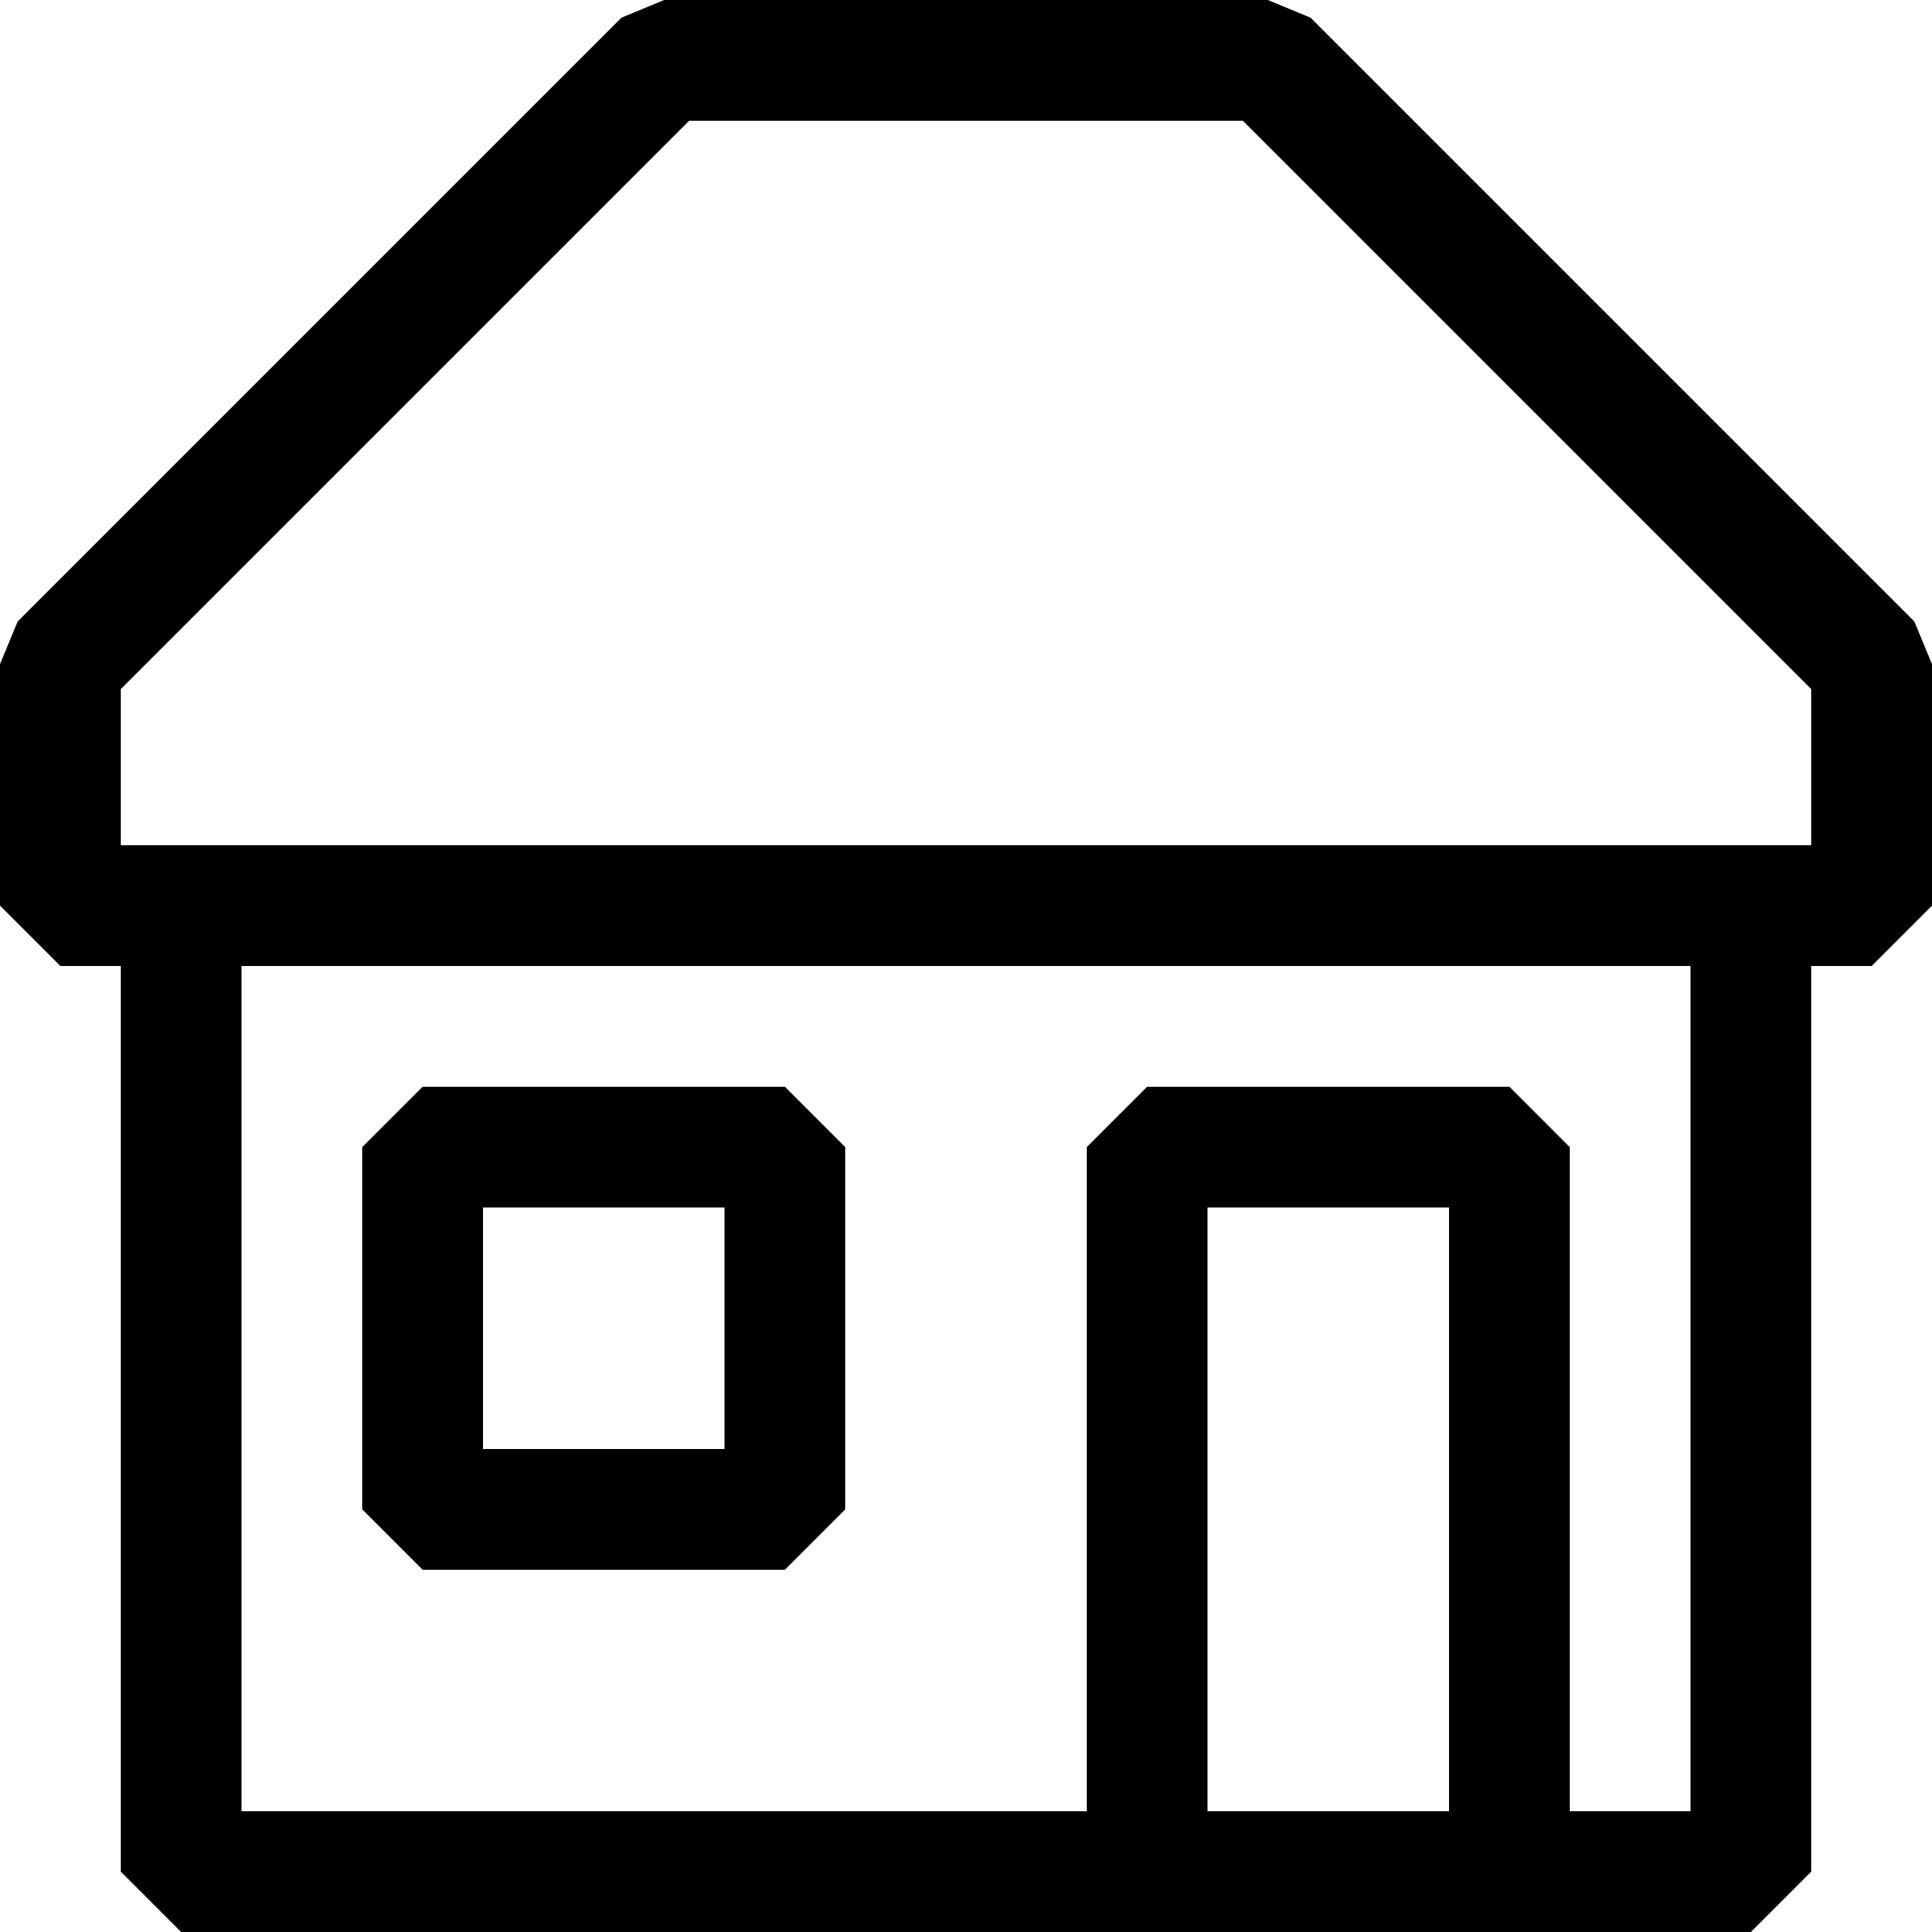 16x16px-capable, black and white icons by qubodup